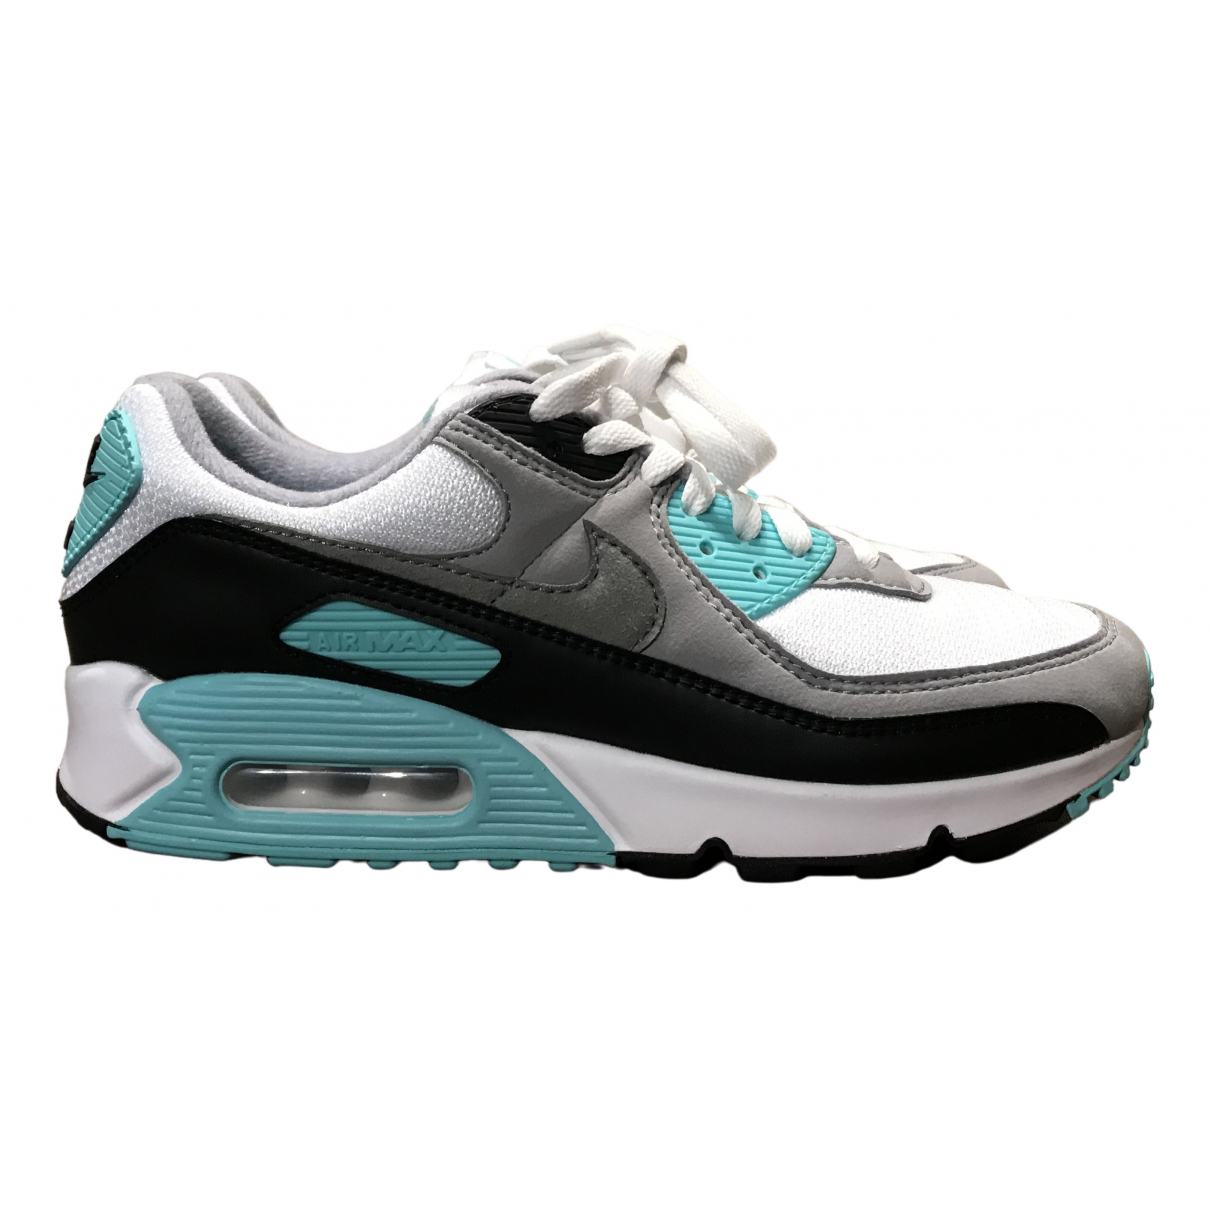 Nike Air Max 90 Turquoise Cloth Trainers for Men 41 EU